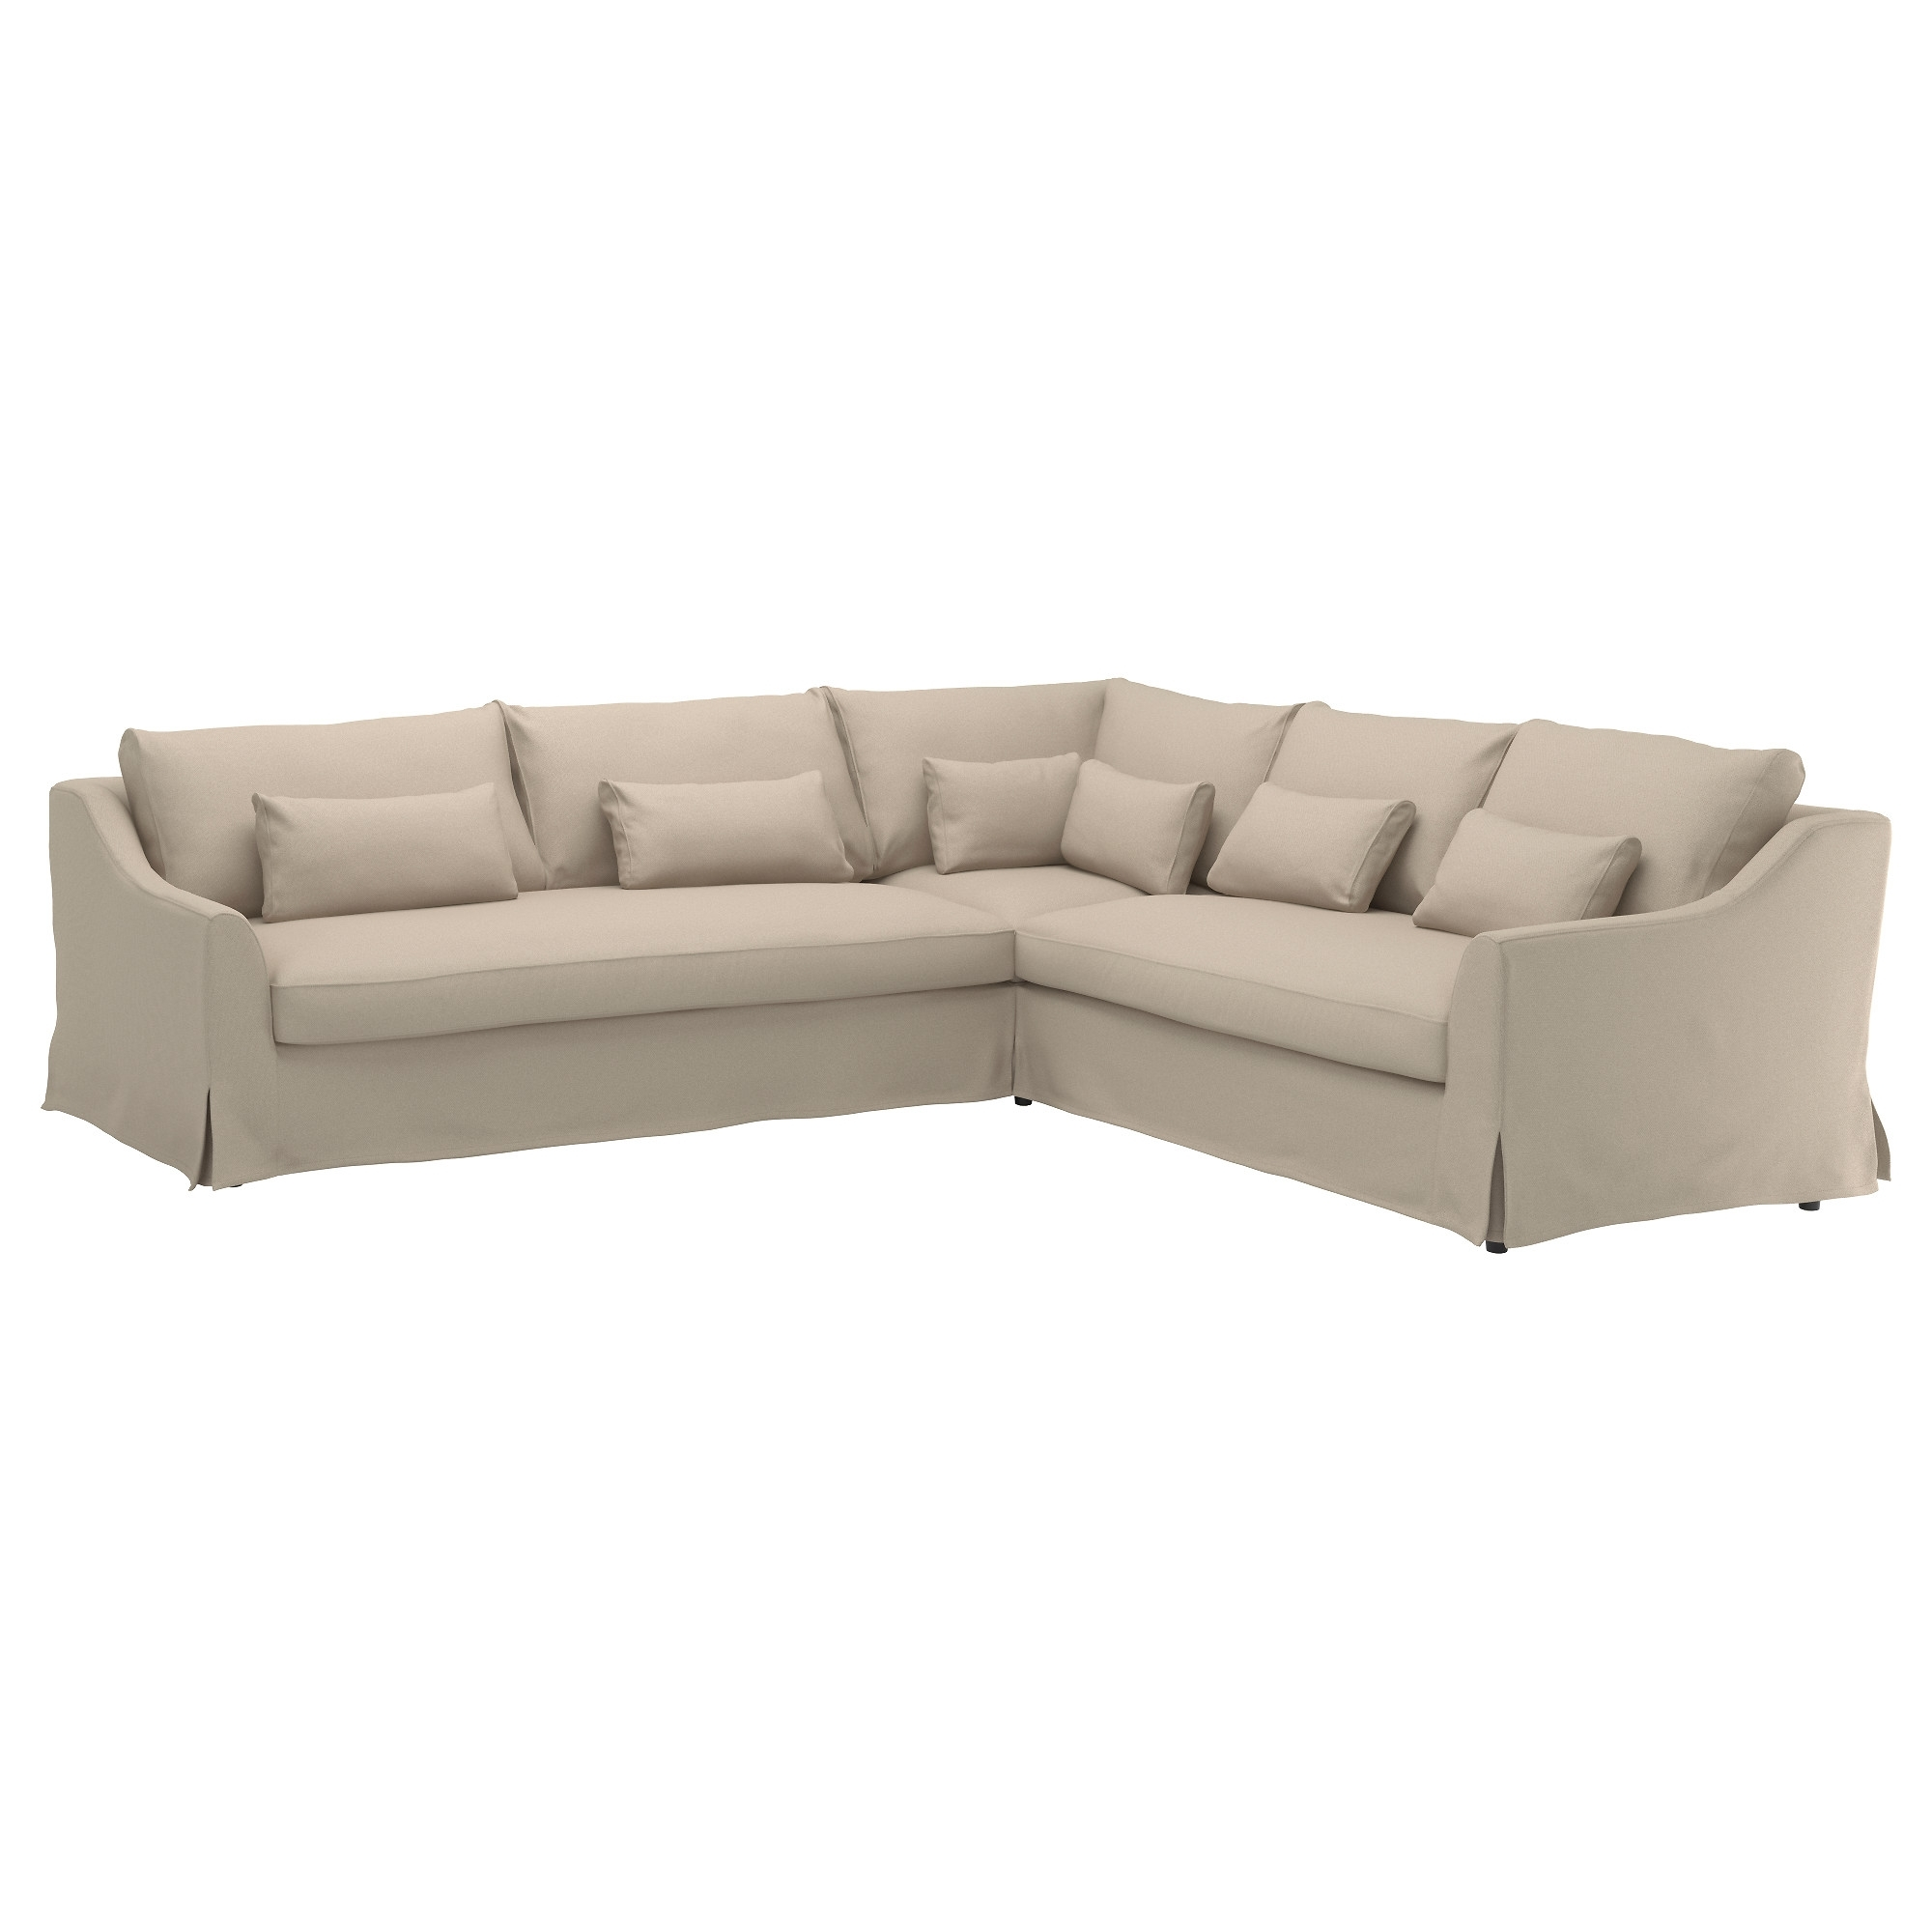 Las Vegas Sectional Sofas Throughout Widely Used Färlöv Sectional,5 Seat/sofa Right – Flodafors Beige – Ikea (View 18 of 20)